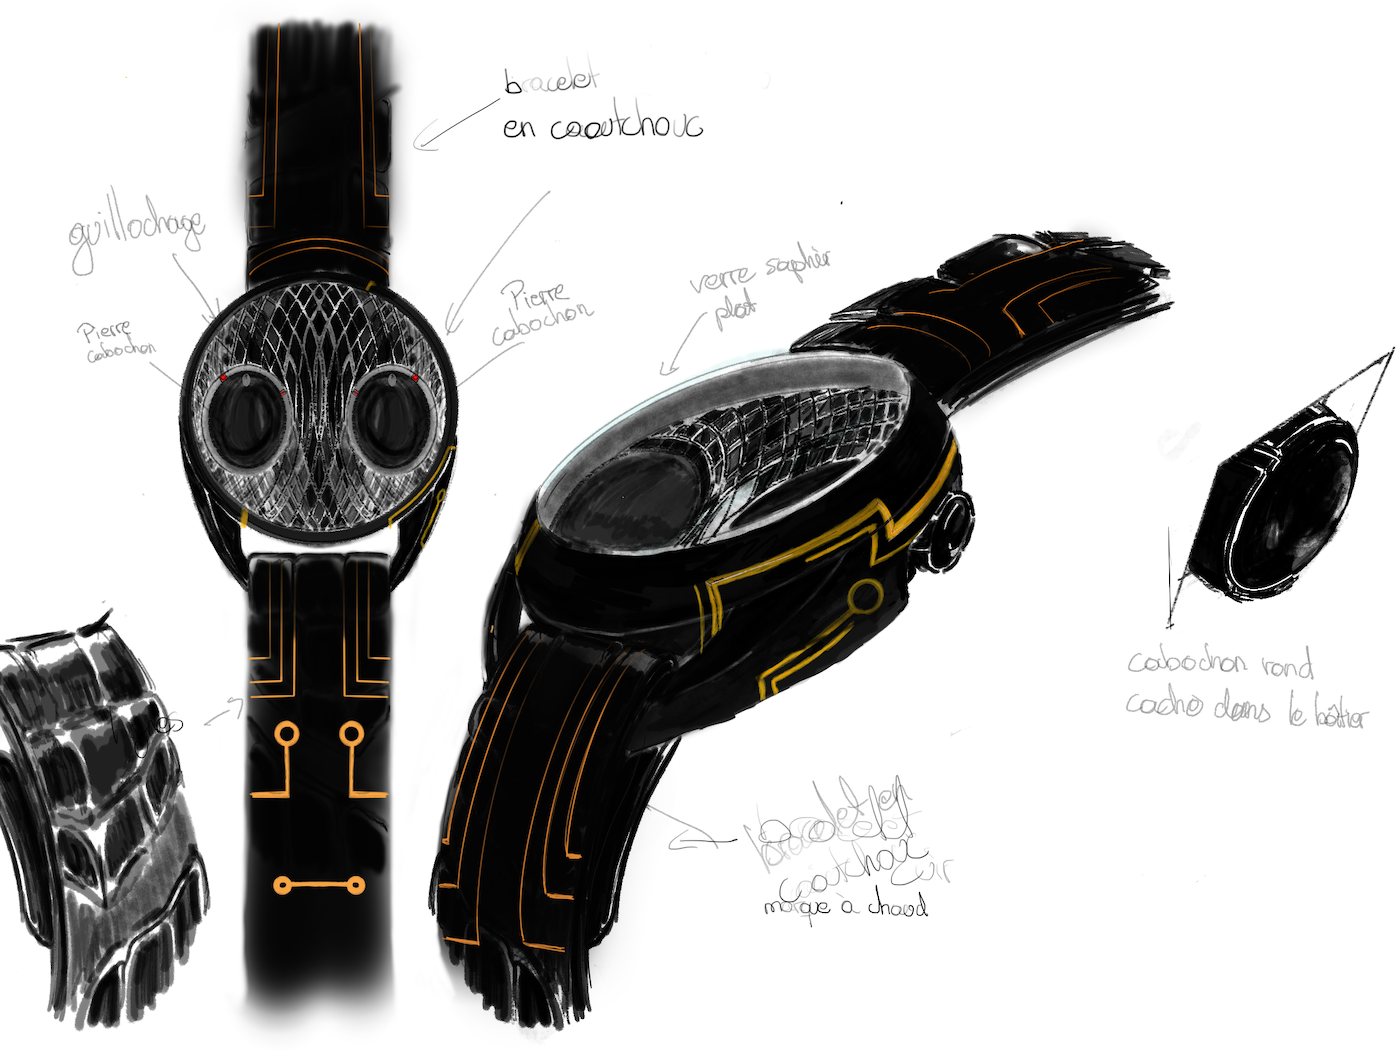 The watch inspired by ants